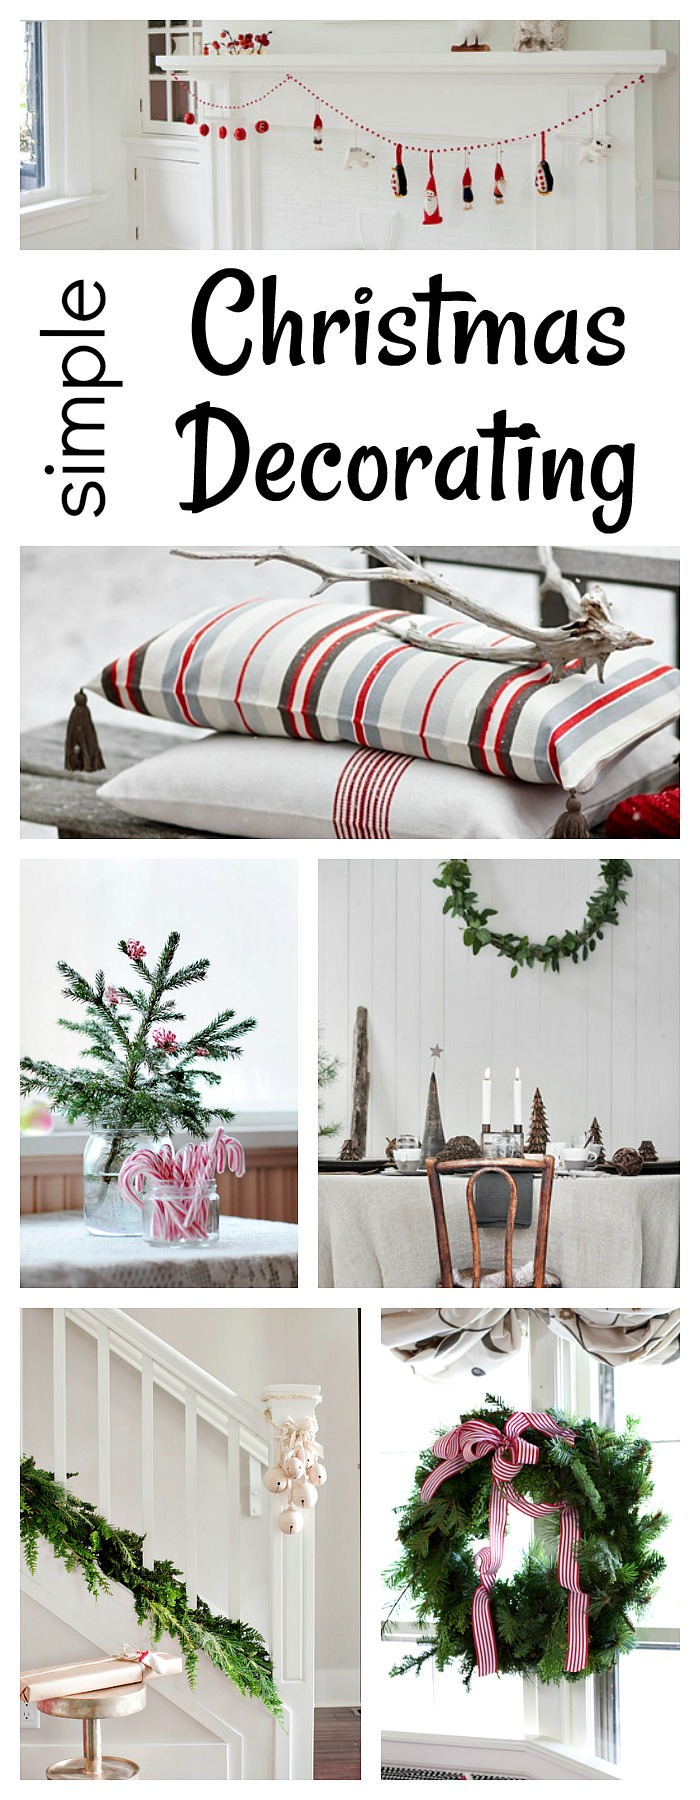 Simple Christmas Decorating Ideas - Town & Country Living